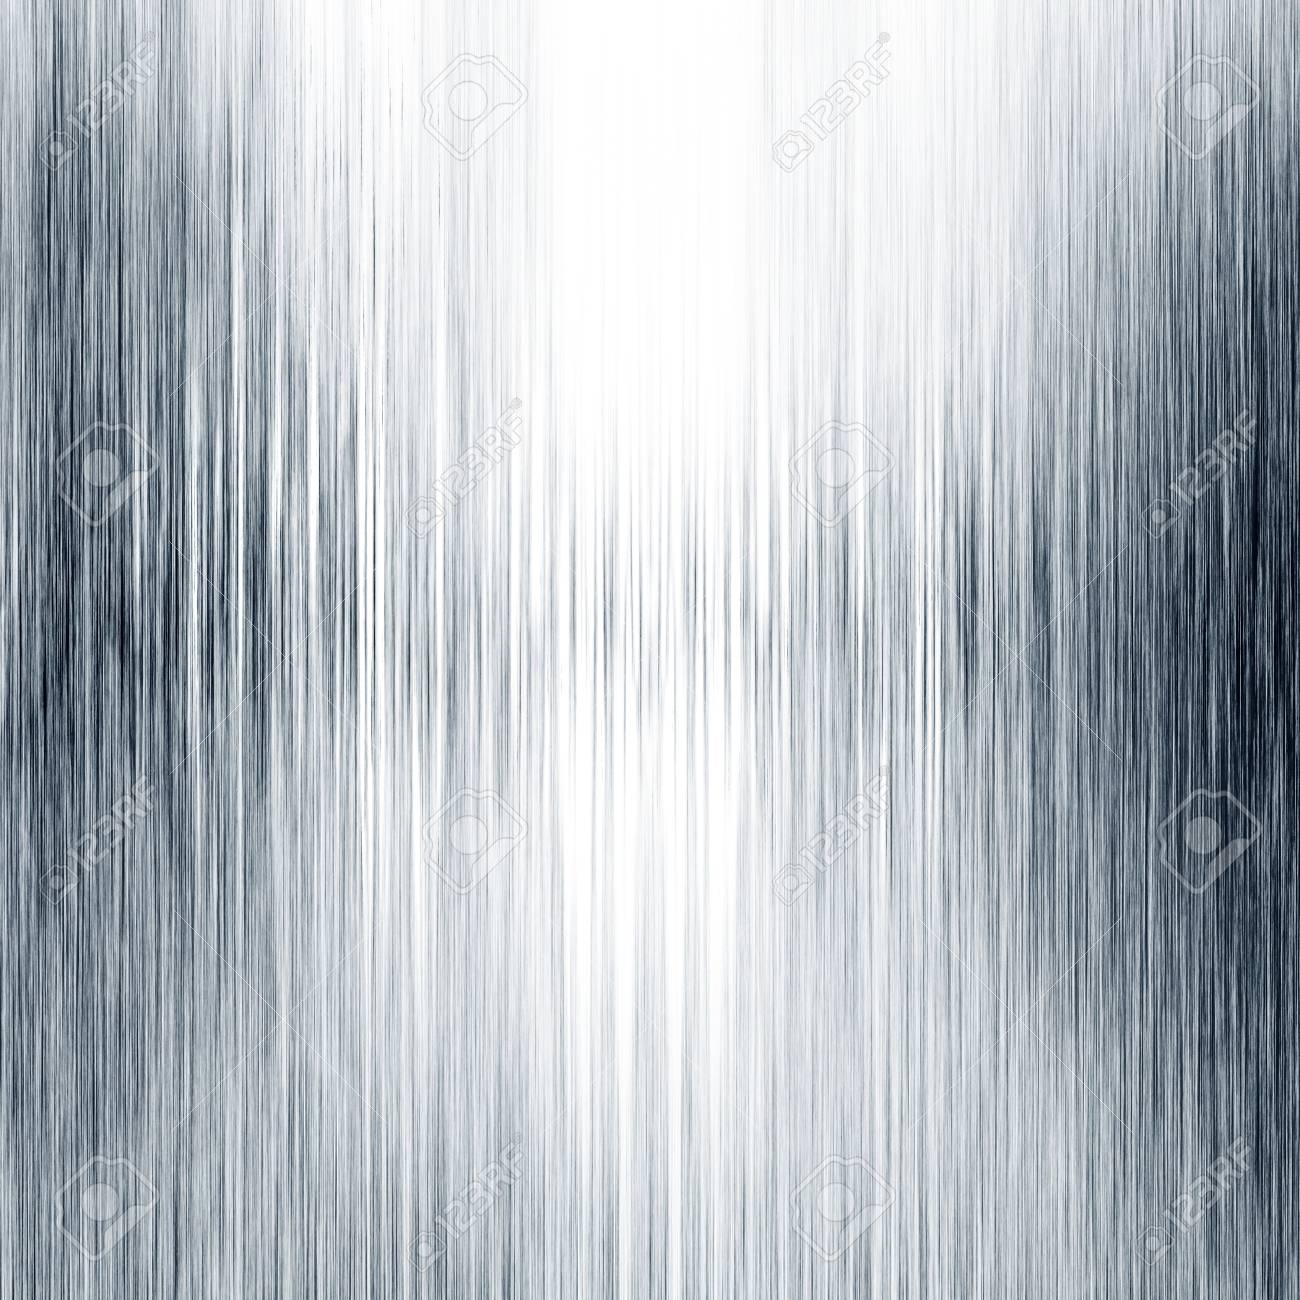 Brushed metal texture with some reflections and highlights Stock Photo - 15140504